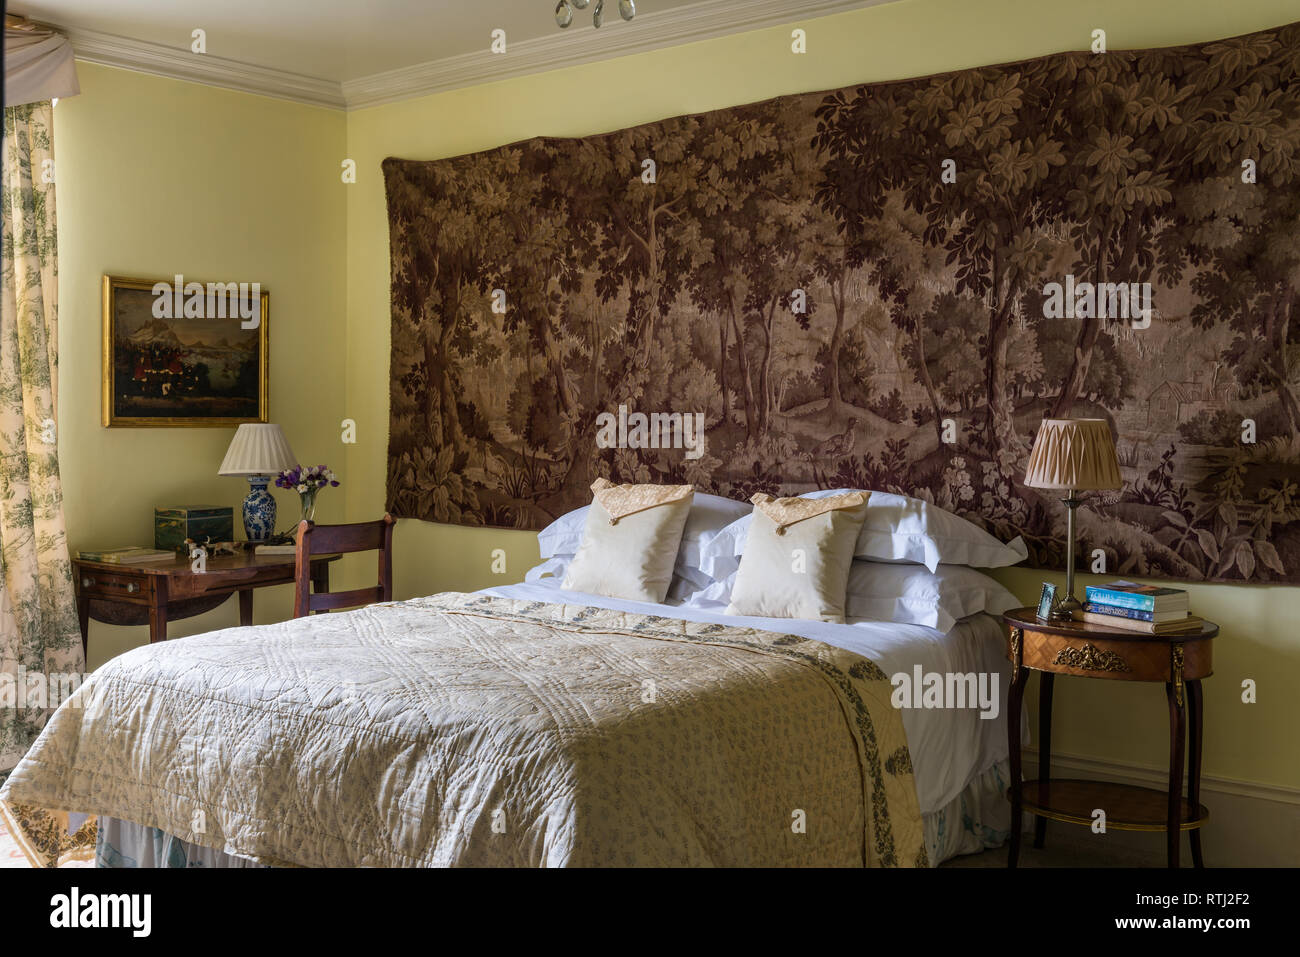 Yellow Quilt On Double Bed With Wall Hanging Of Woodland Scene Stock Photo Alamy